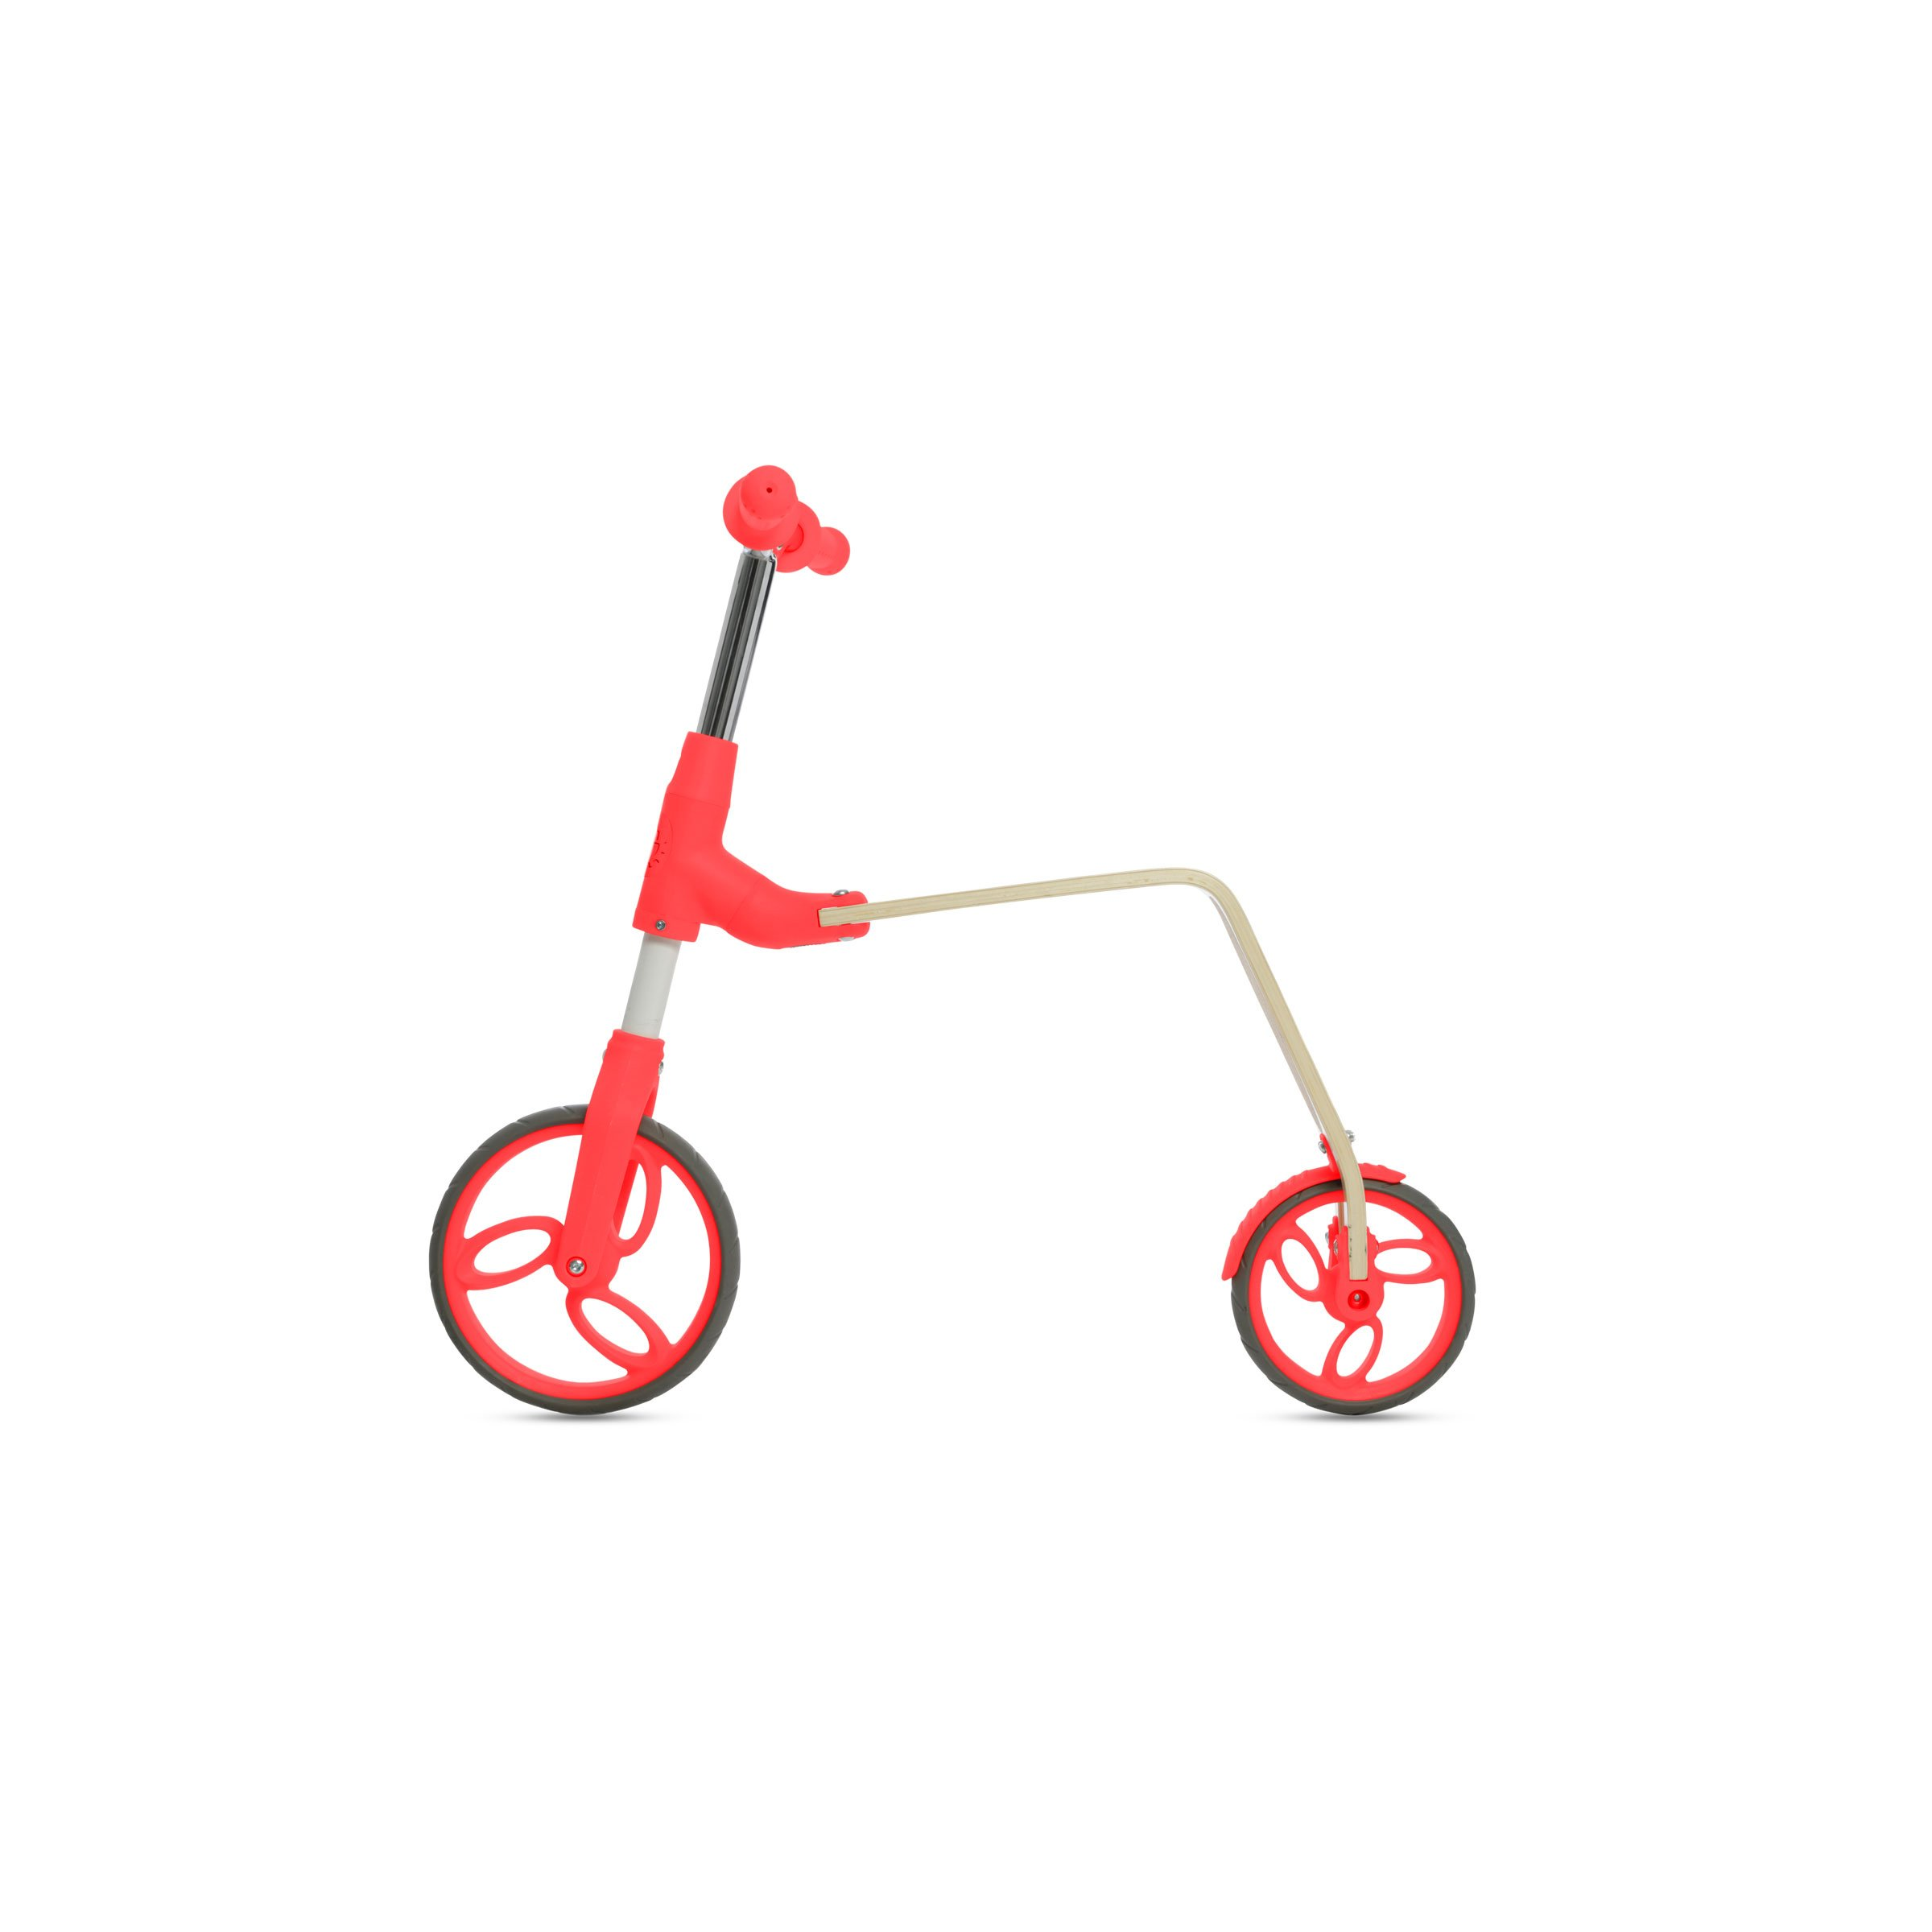 Jetson Orange Flex 2-in-1 Kick Scooter and Balance Bike Ride-On Push for Toddler & Kids - Unique Conversion System - Lightweight, Removable Handlebar, Wood Finish Deck - EZ Assembly by Jetson